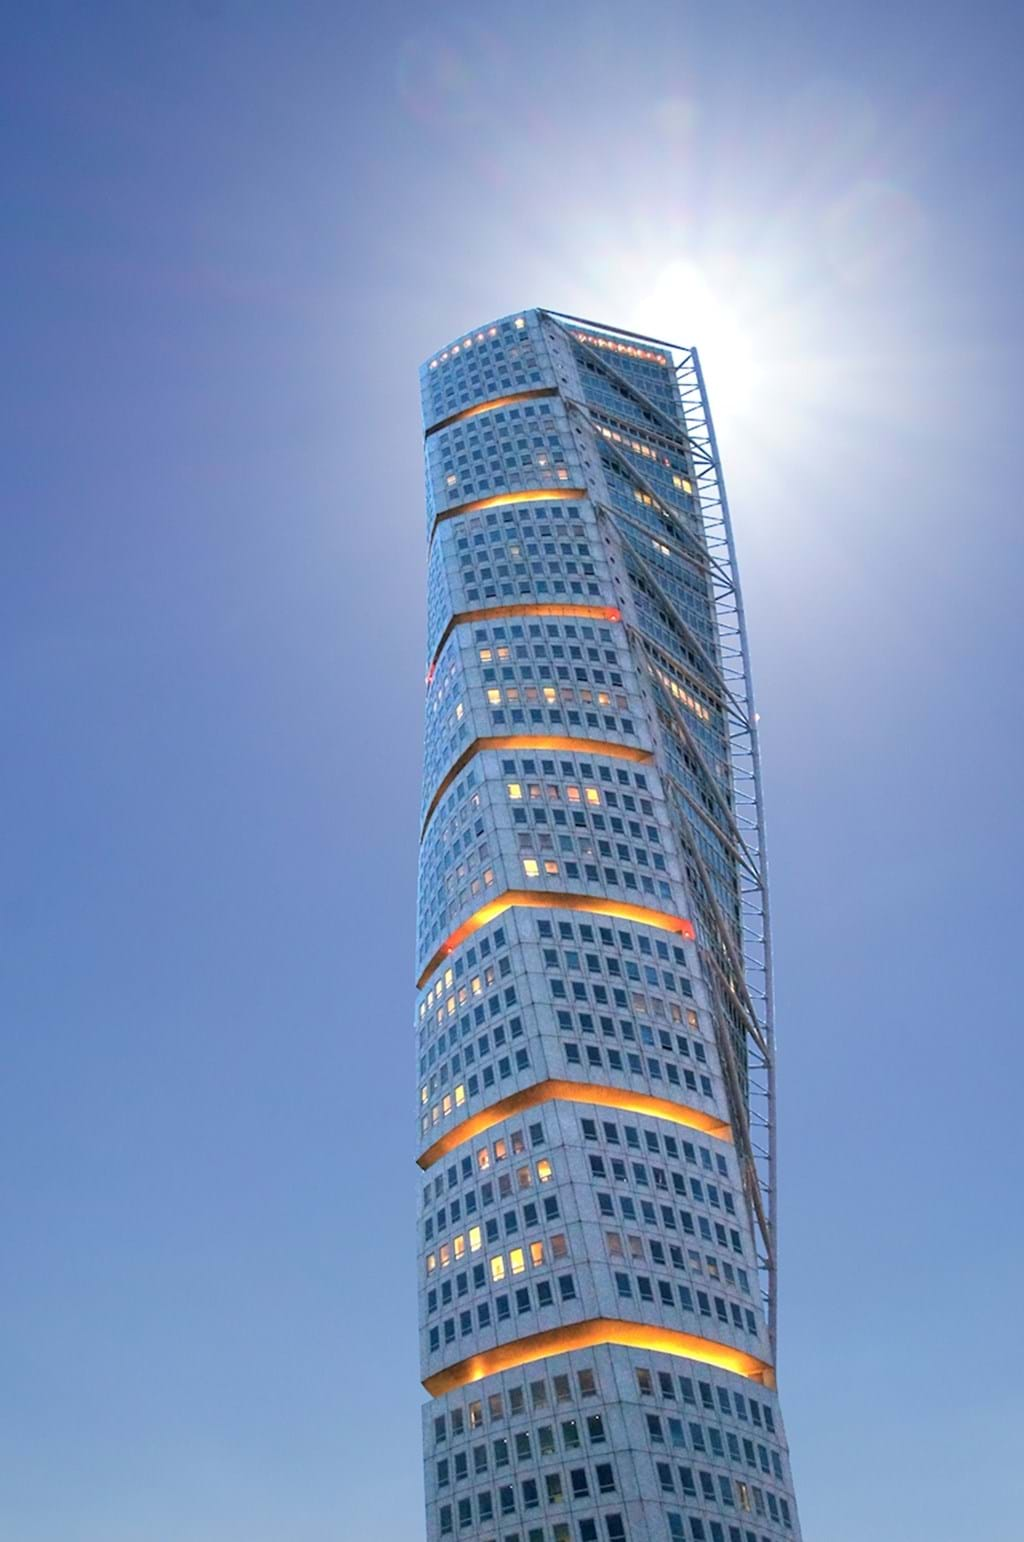 Poster: Turning Torso - Places & Cities